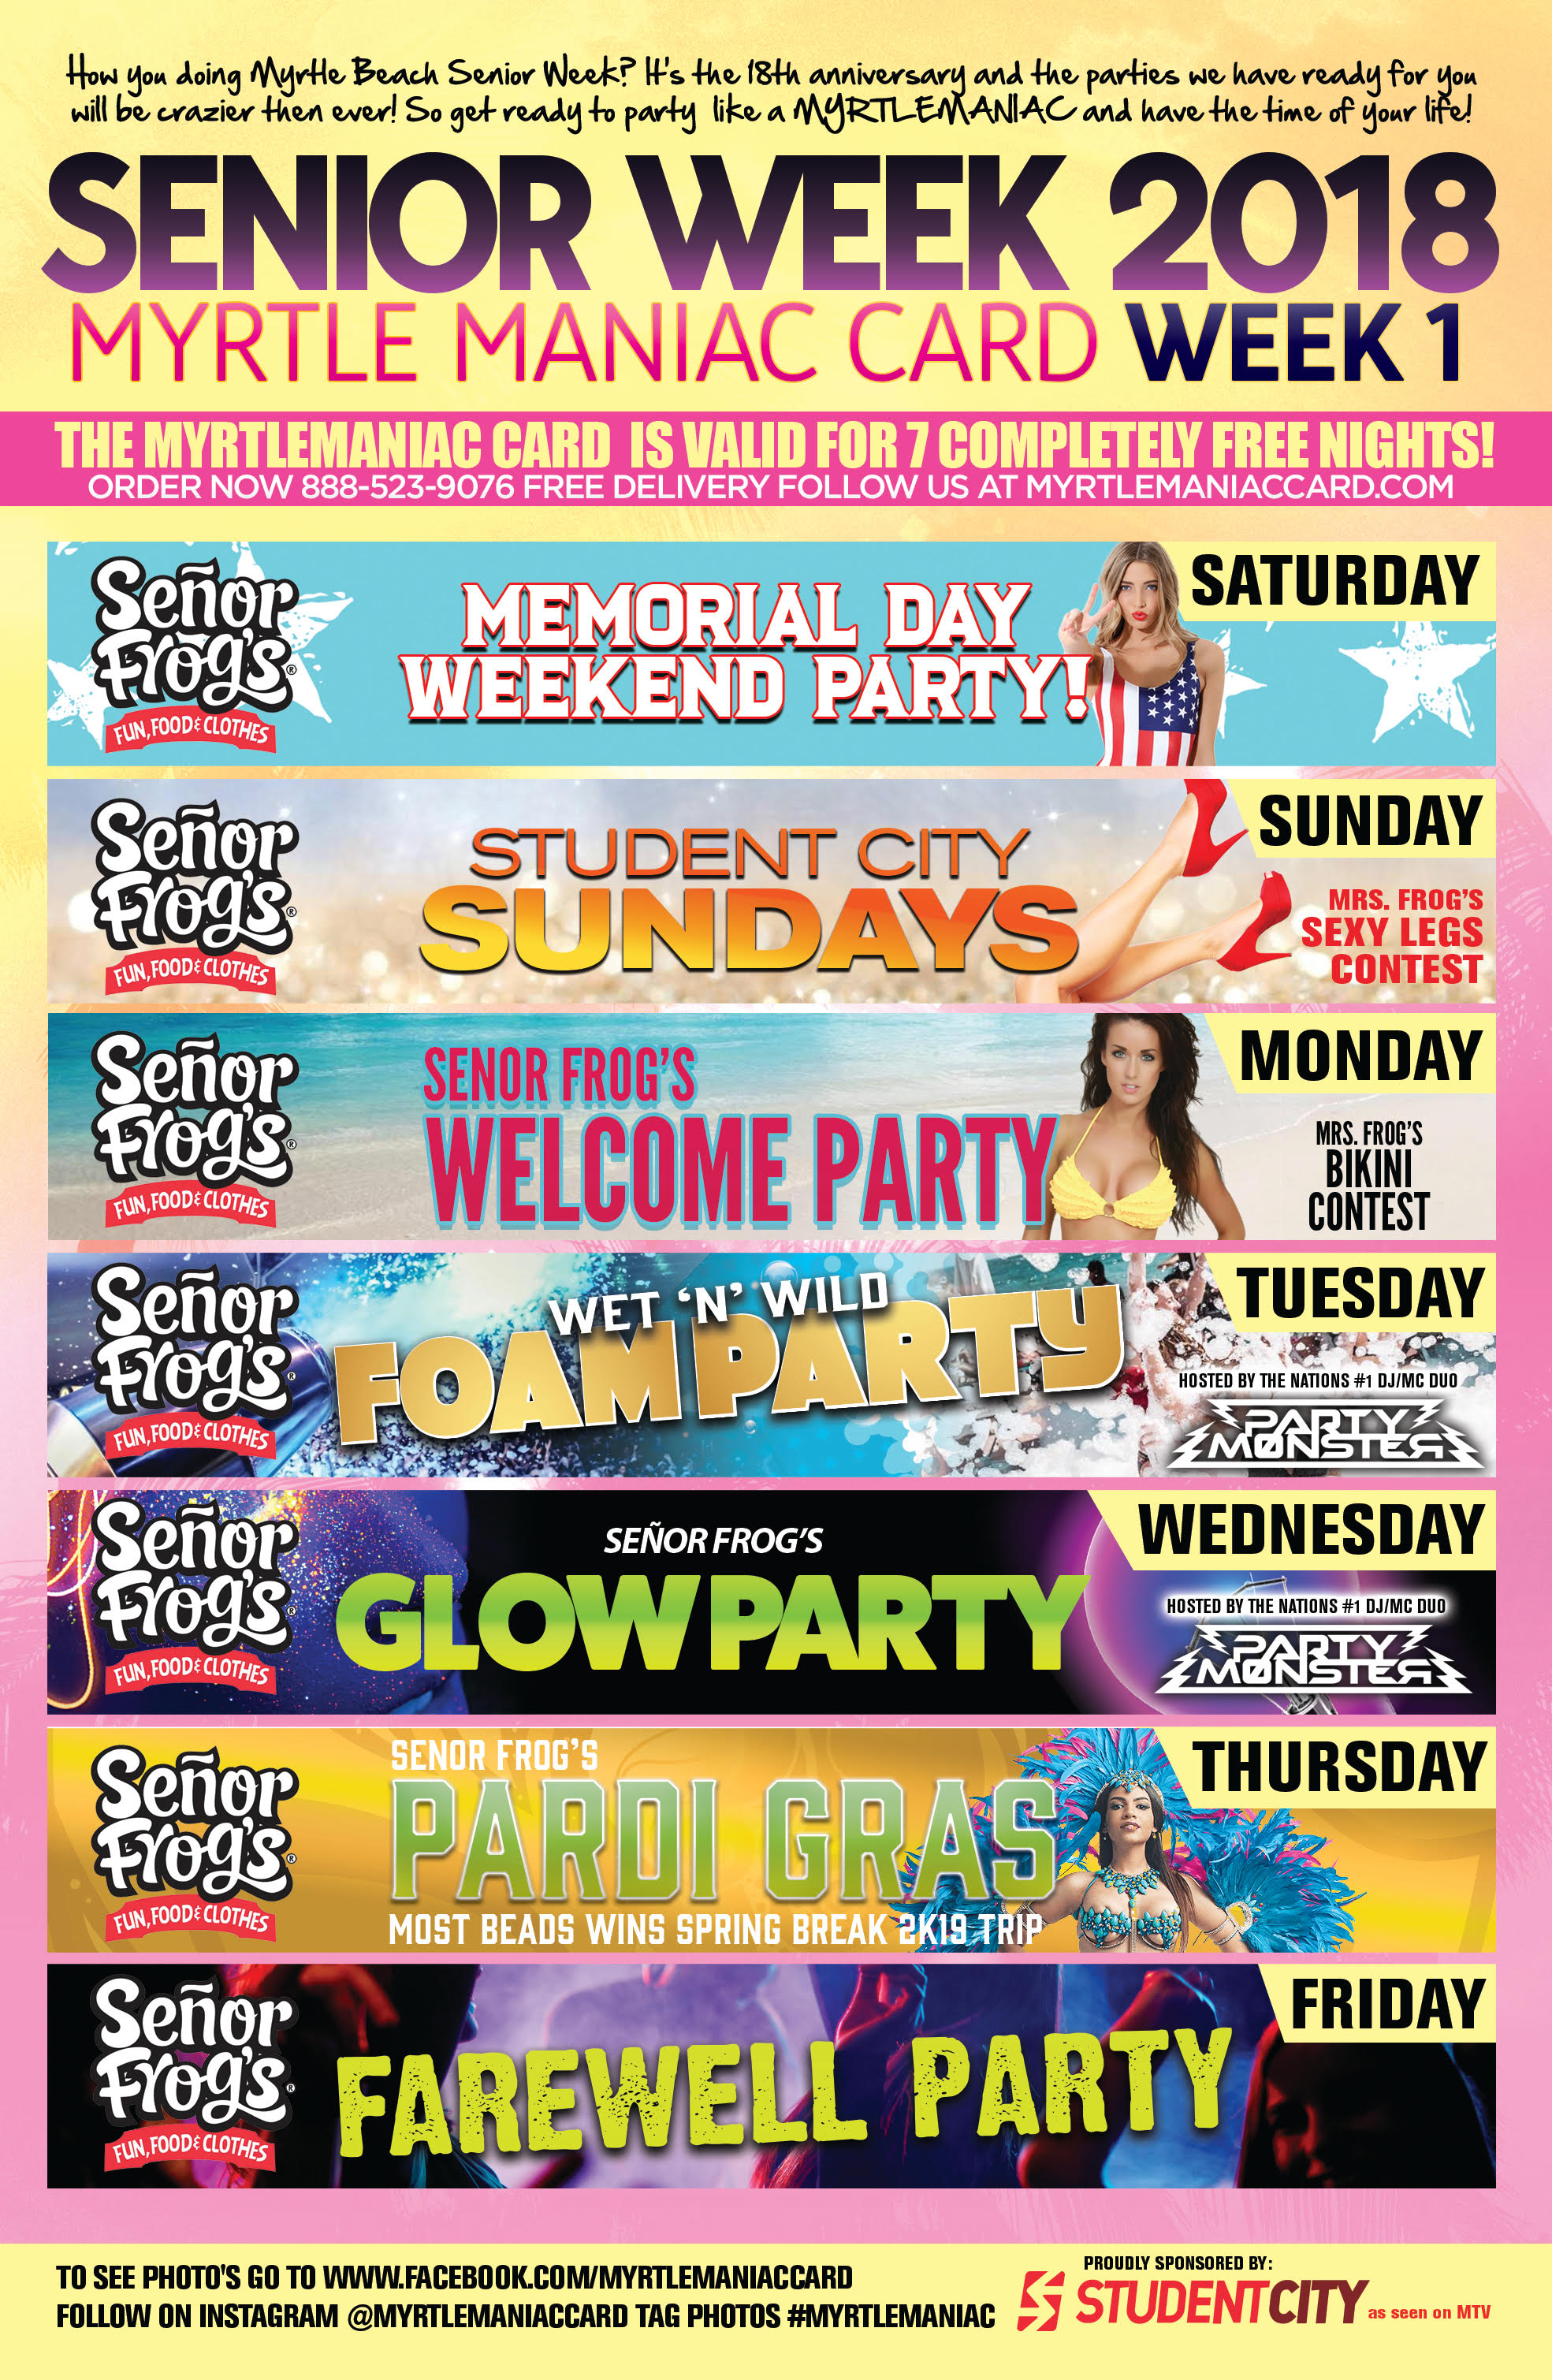 7 Night Entertainment Party Package For Senior Week 2018 In Myrtle Beach Sc The 1 Destination Country